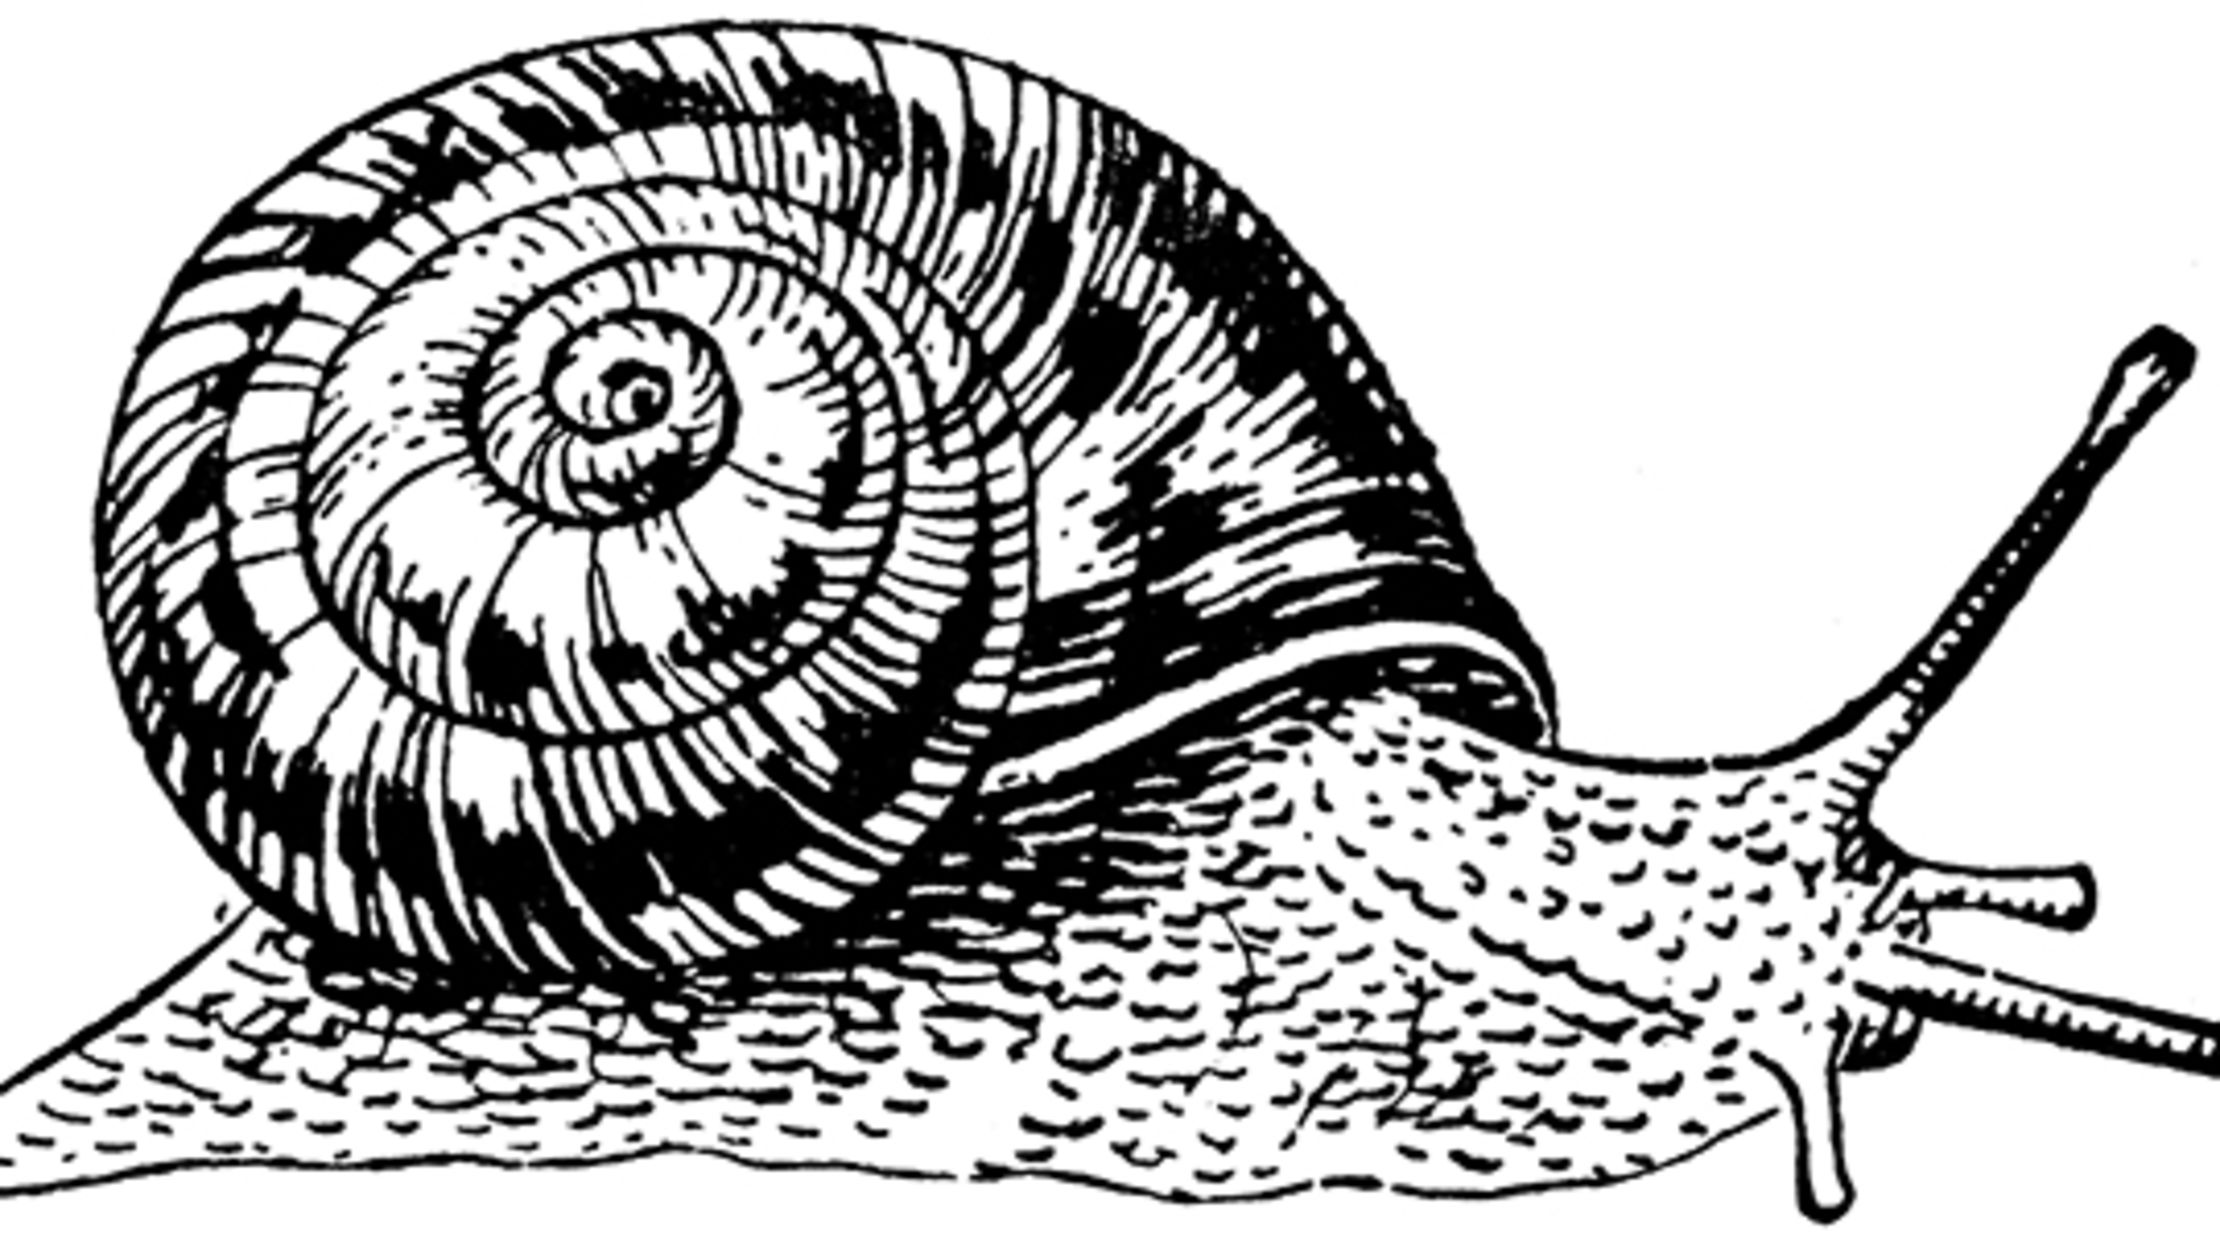 The Strange Tale of the Snail that 'Rose from the Dead